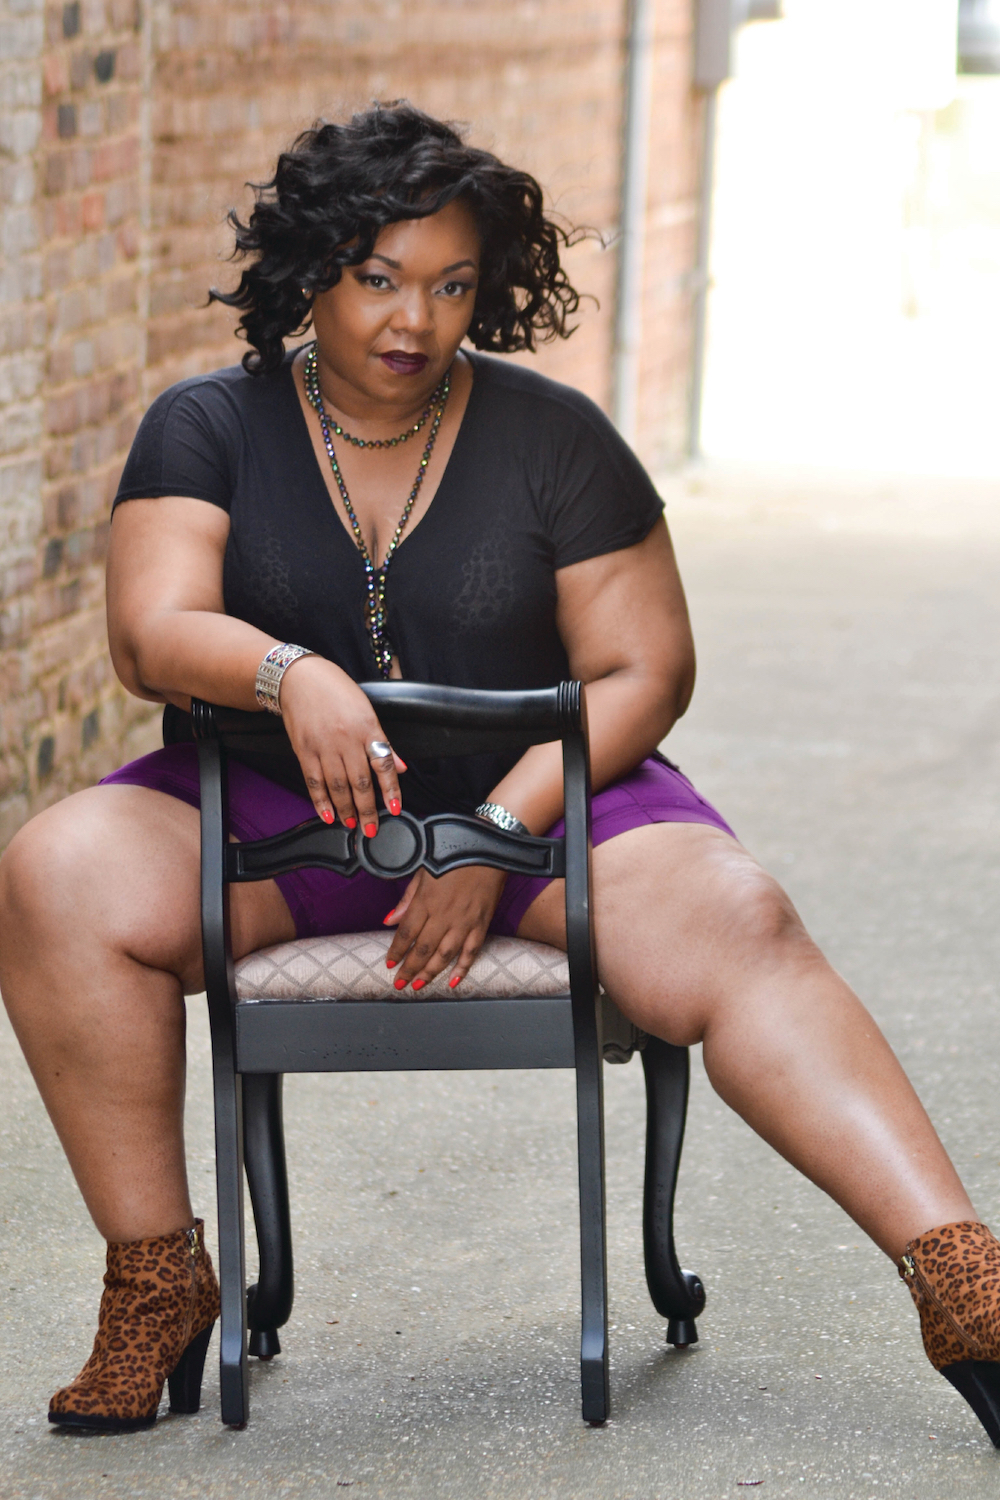 #ThickThighs – No Problem! by Kevil Tice